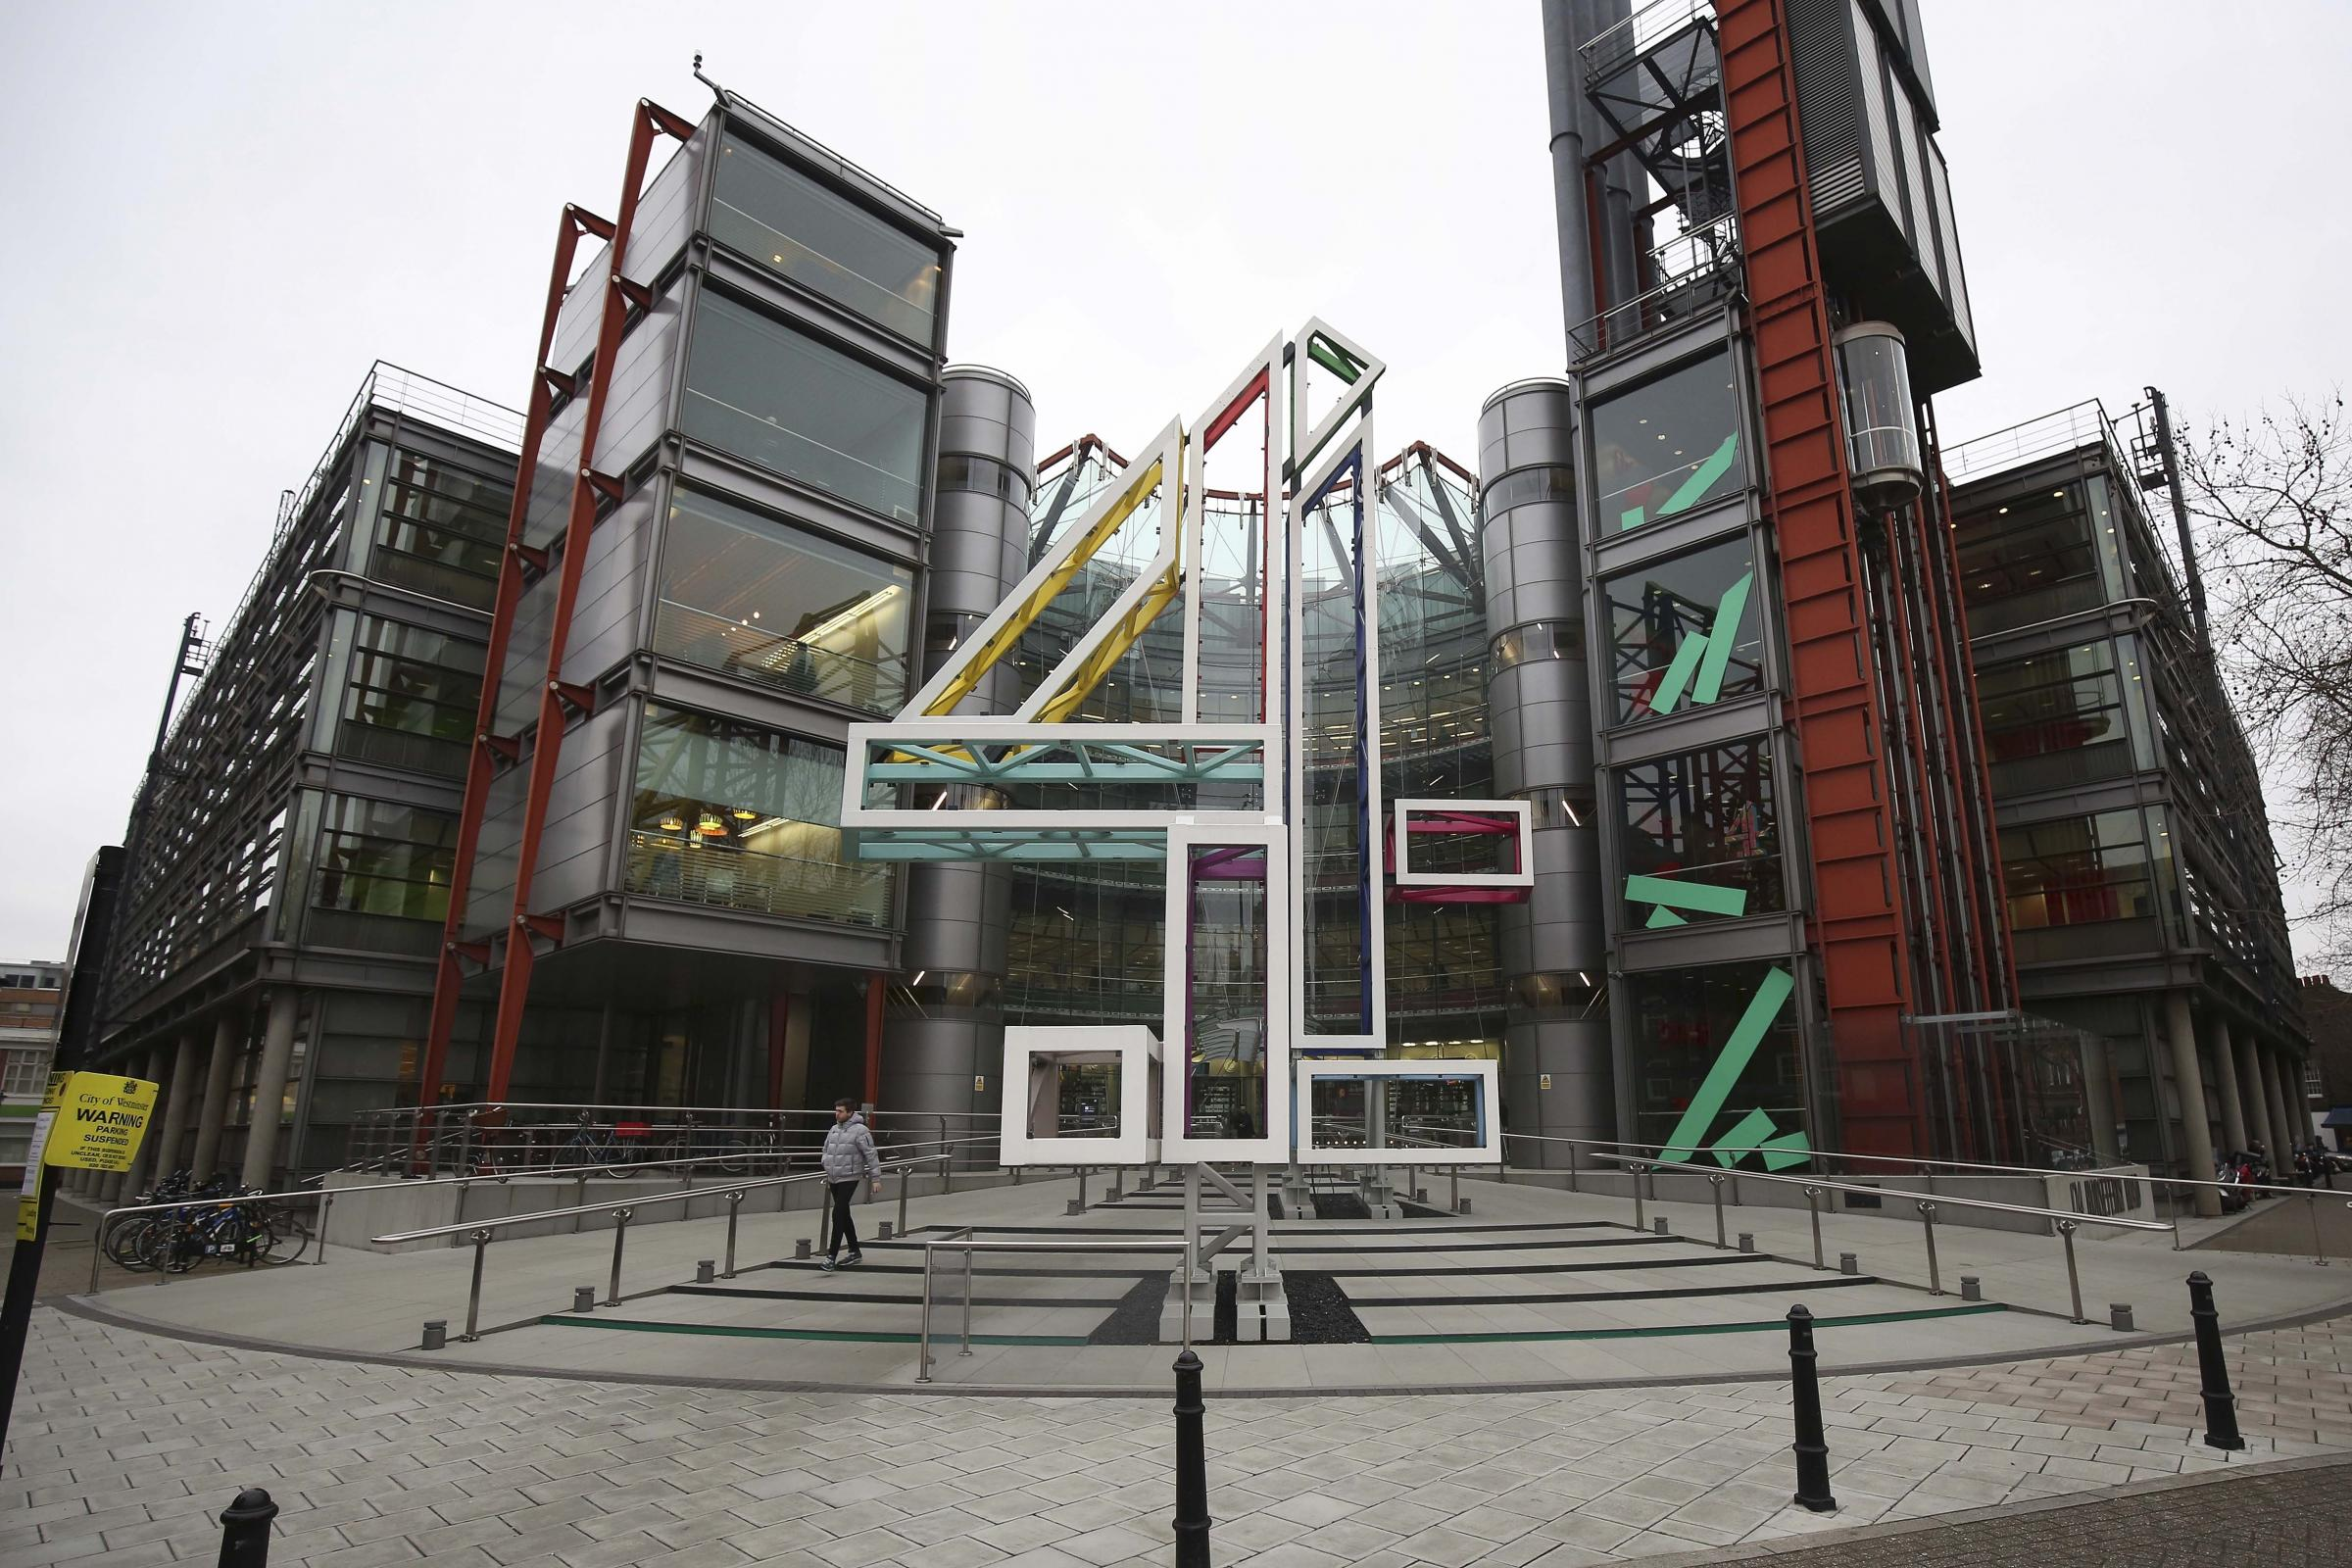 Channel 4 headquarters